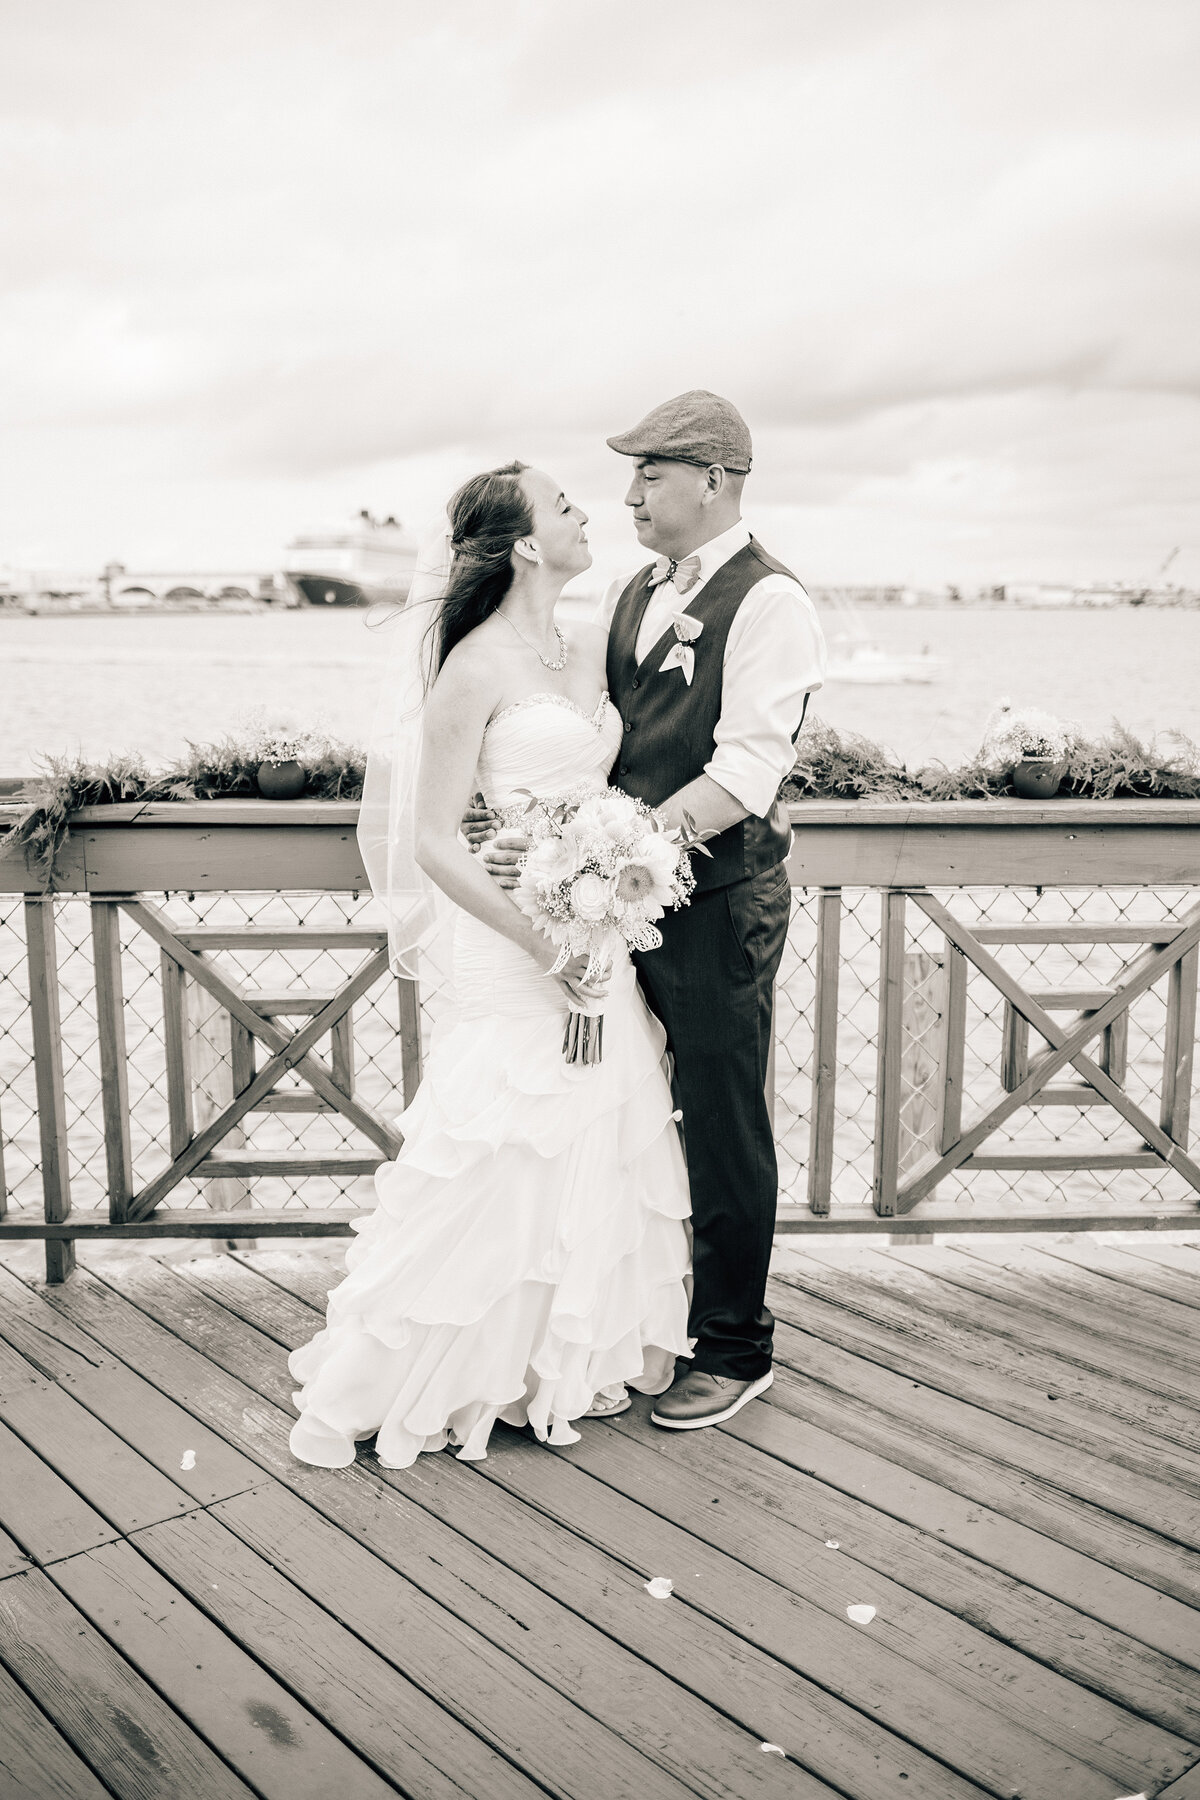 Kimberly_Hoyle_Photography_Marrero_Millikens_Reef_Wedding-58